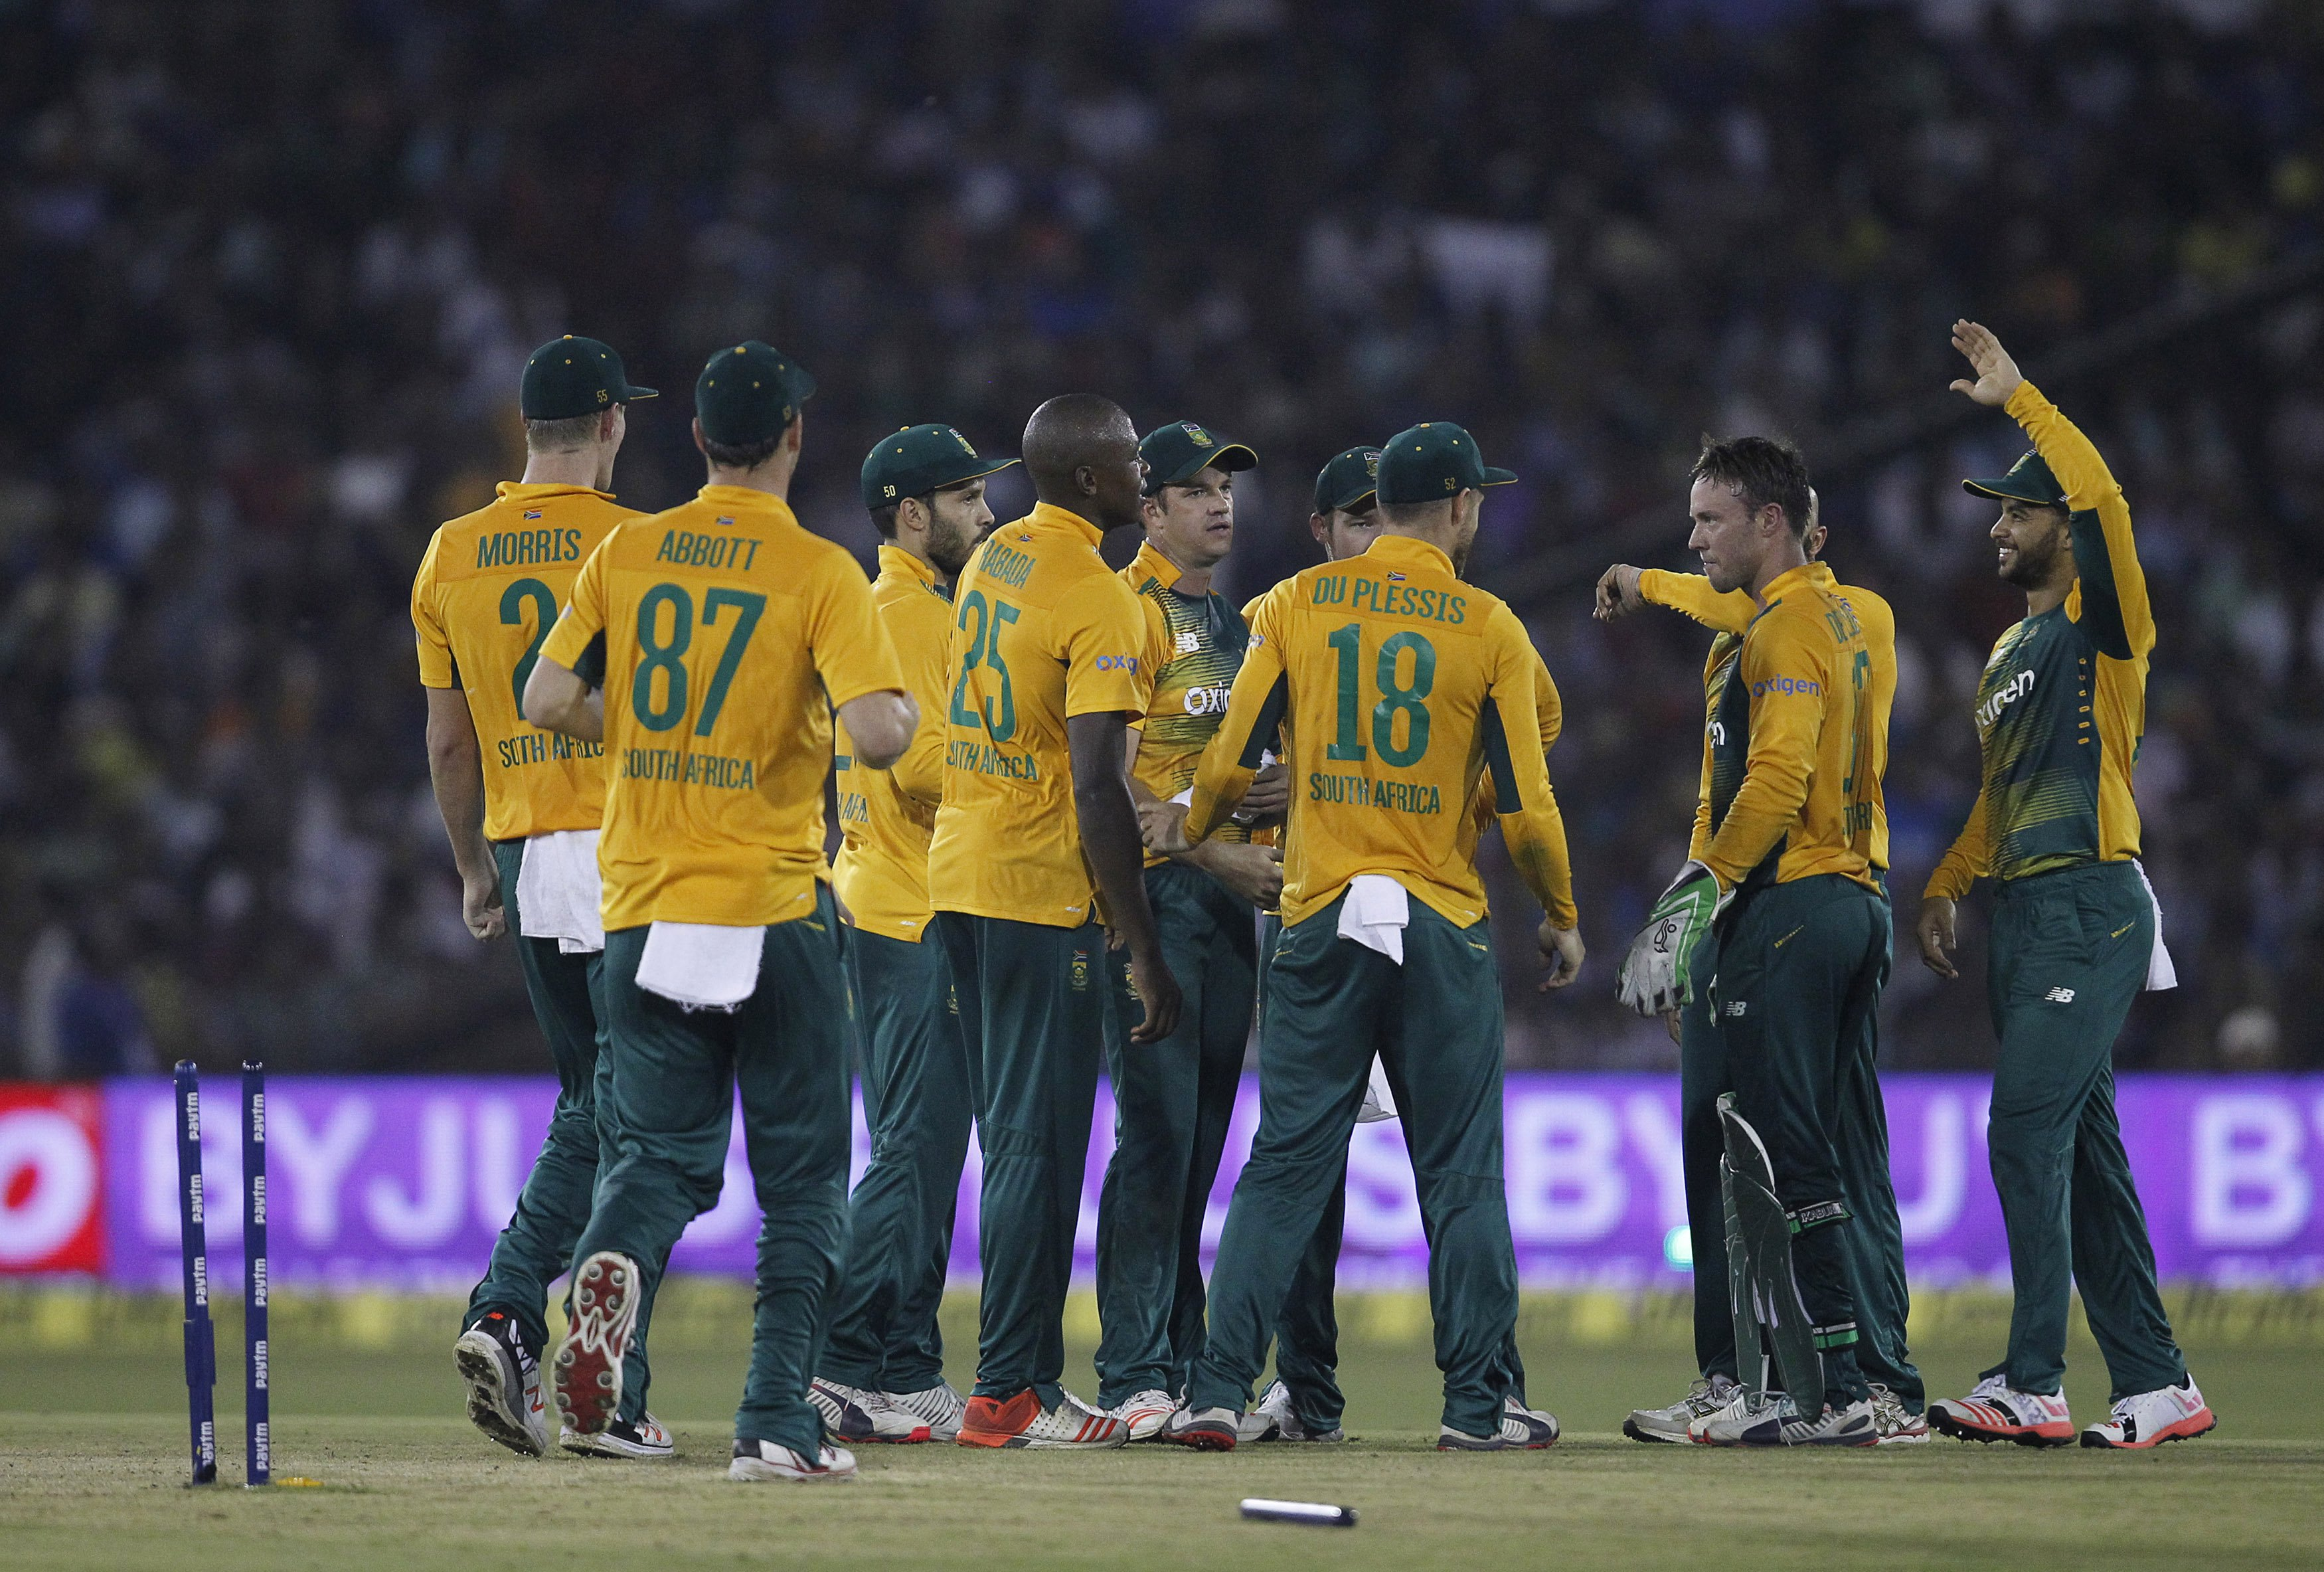 South Africa's players celebrate the dismissal of India's Ambati Rayudu during their second Twenty20 cricket match in Cuttack, India, October 5, 2015. Photo: Reuters